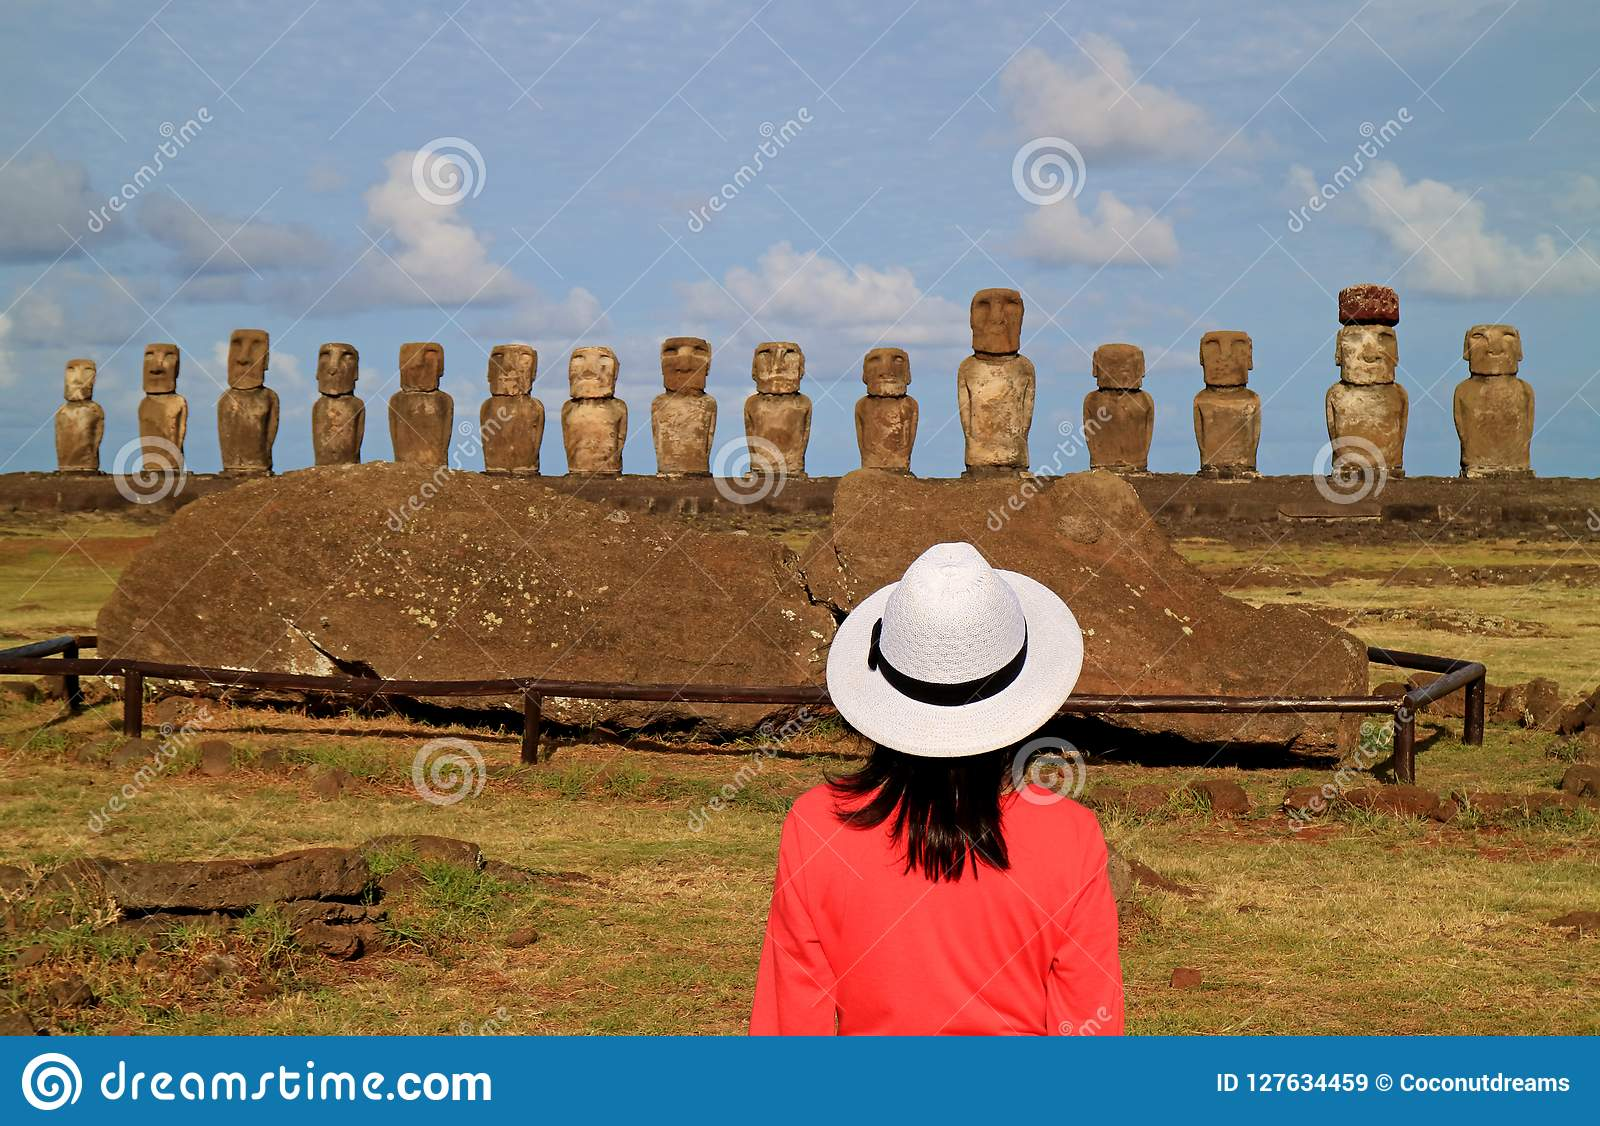 Female tourist impressed by the ruins of Moai statues at Ahu Tongariki on Easter Island archaeological site, Chile